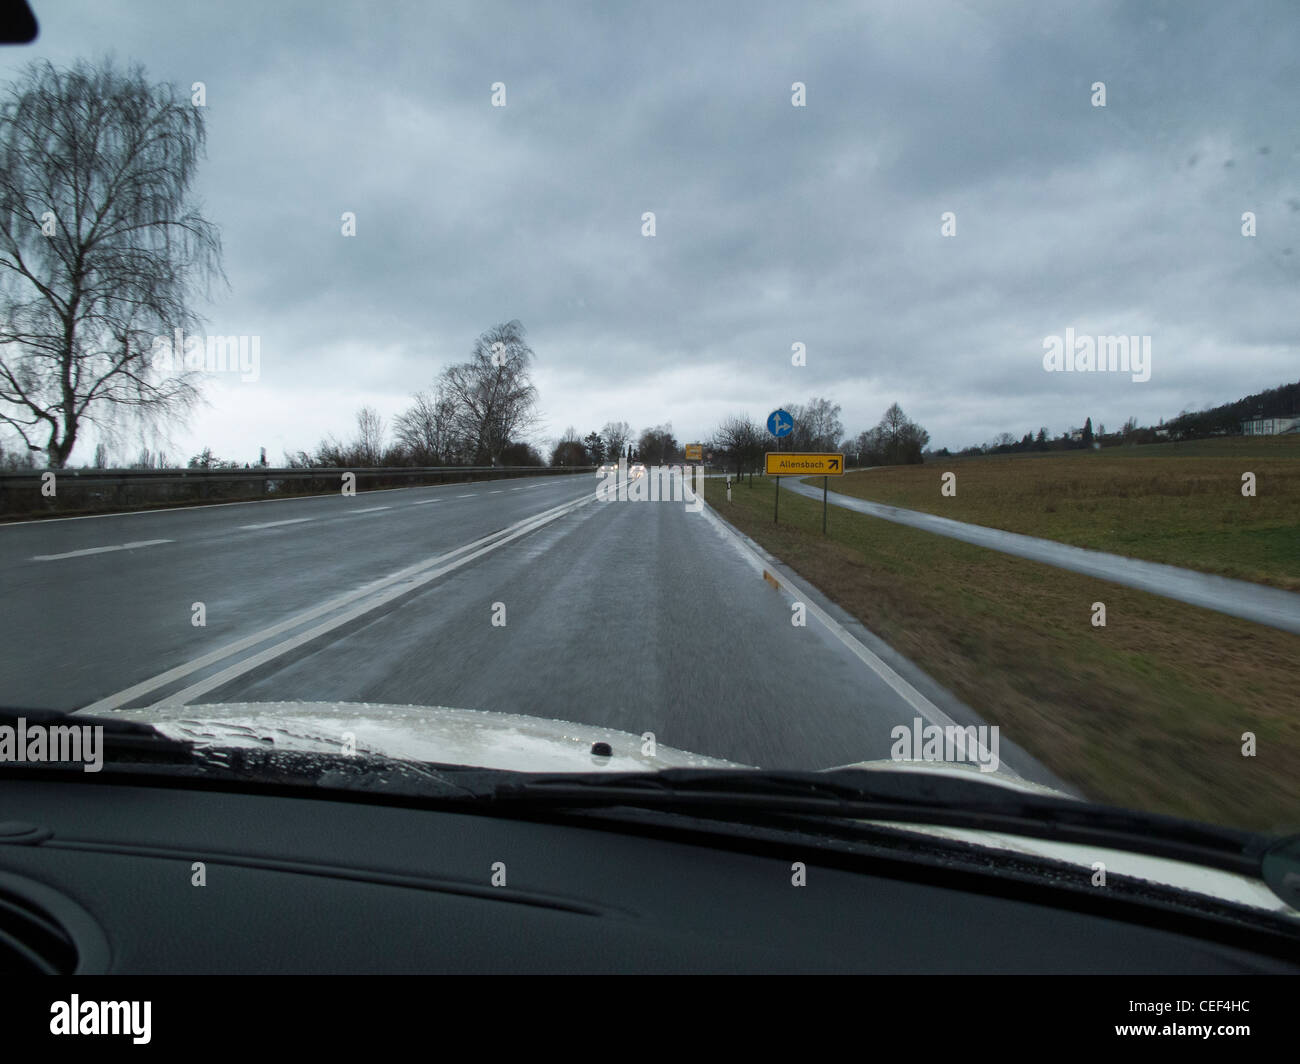 Driving in overcast weather - Stock Image